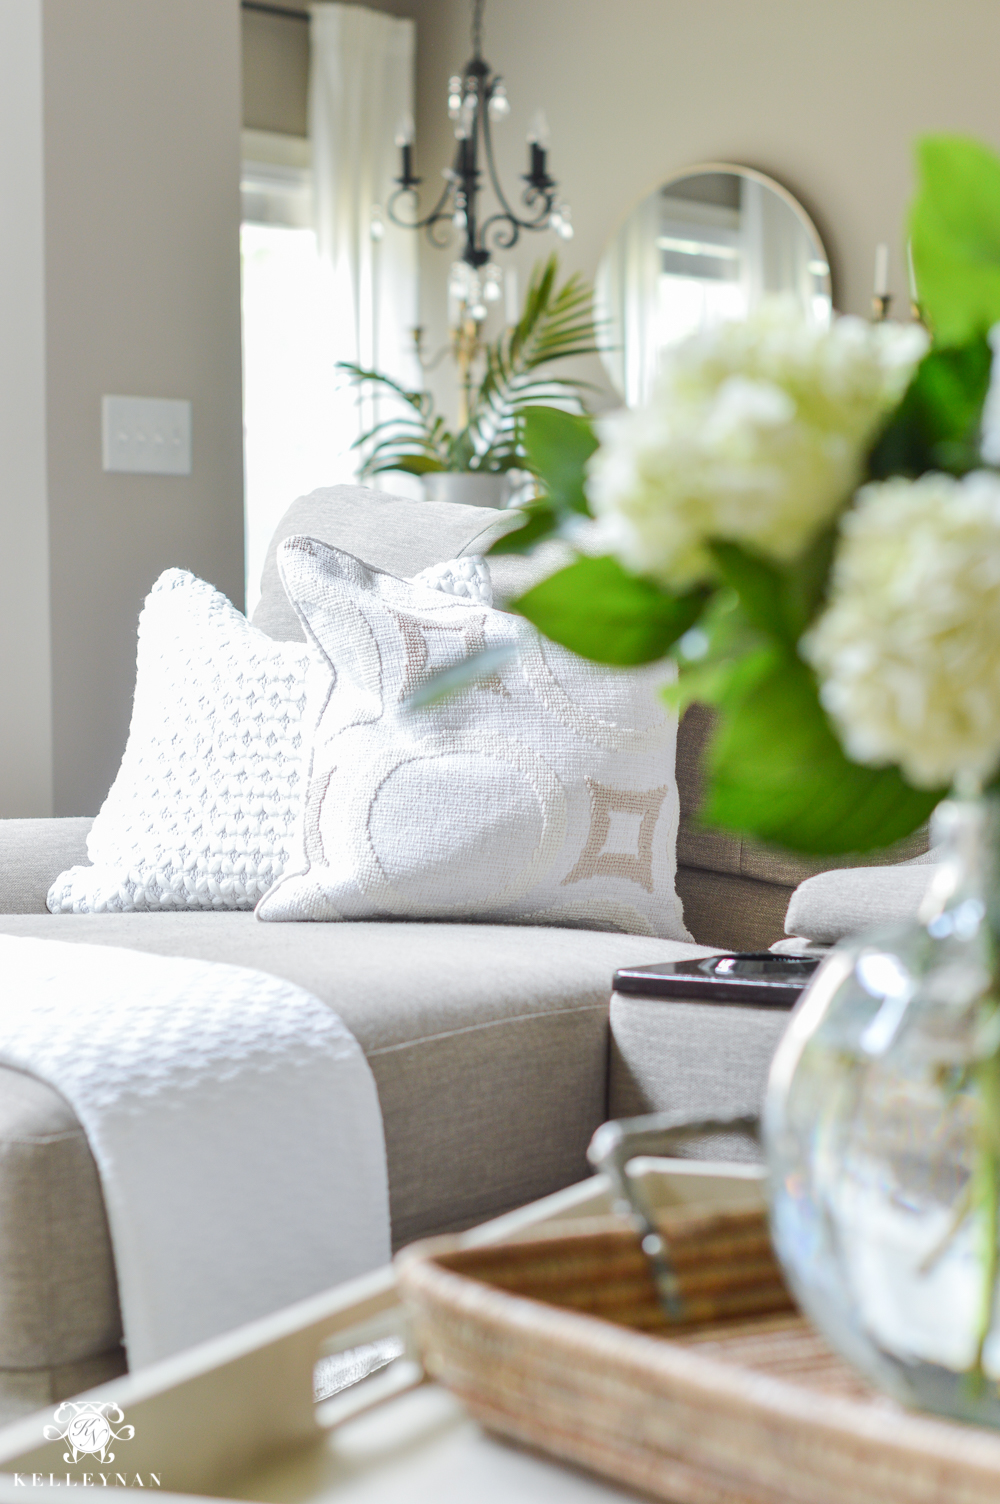 Shades of Summer Home Tour with Neutrals and Naturals- white summer pillows and decor int the living room